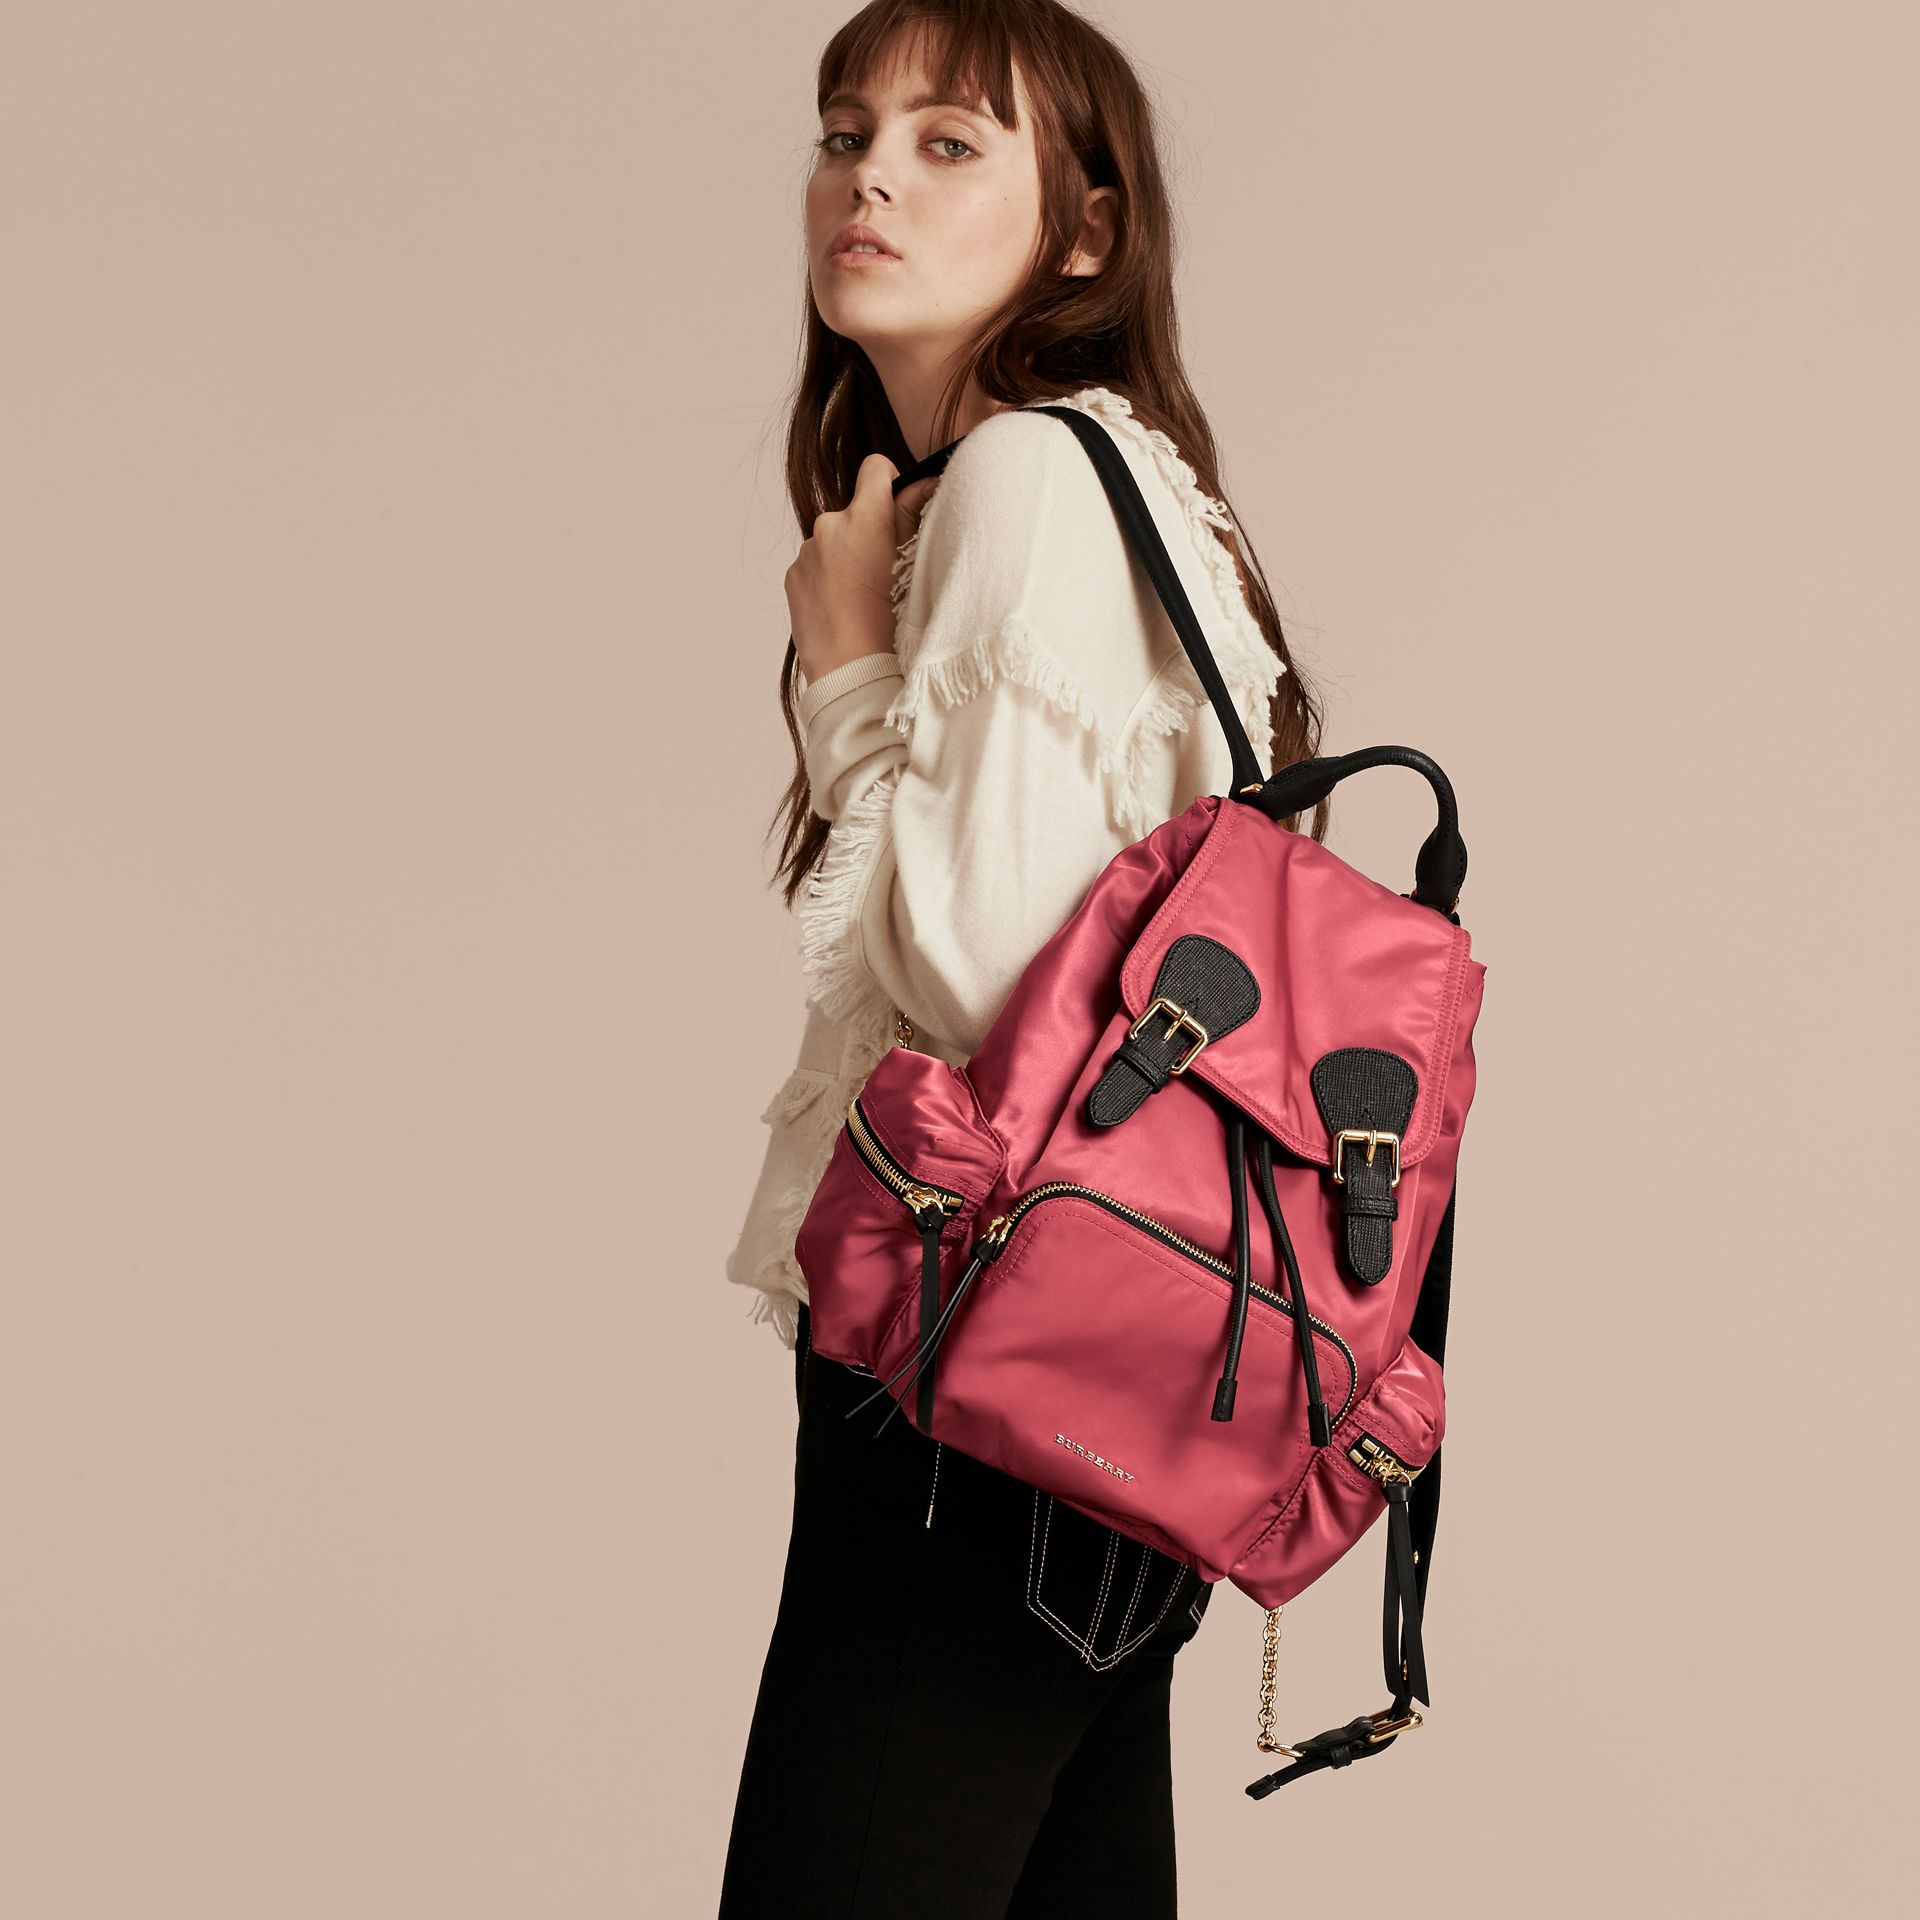 Sac The Rucksack moyen en nylon technique et cuir (Rose Prune) - Femme | Burberry - photo de la galerie 2